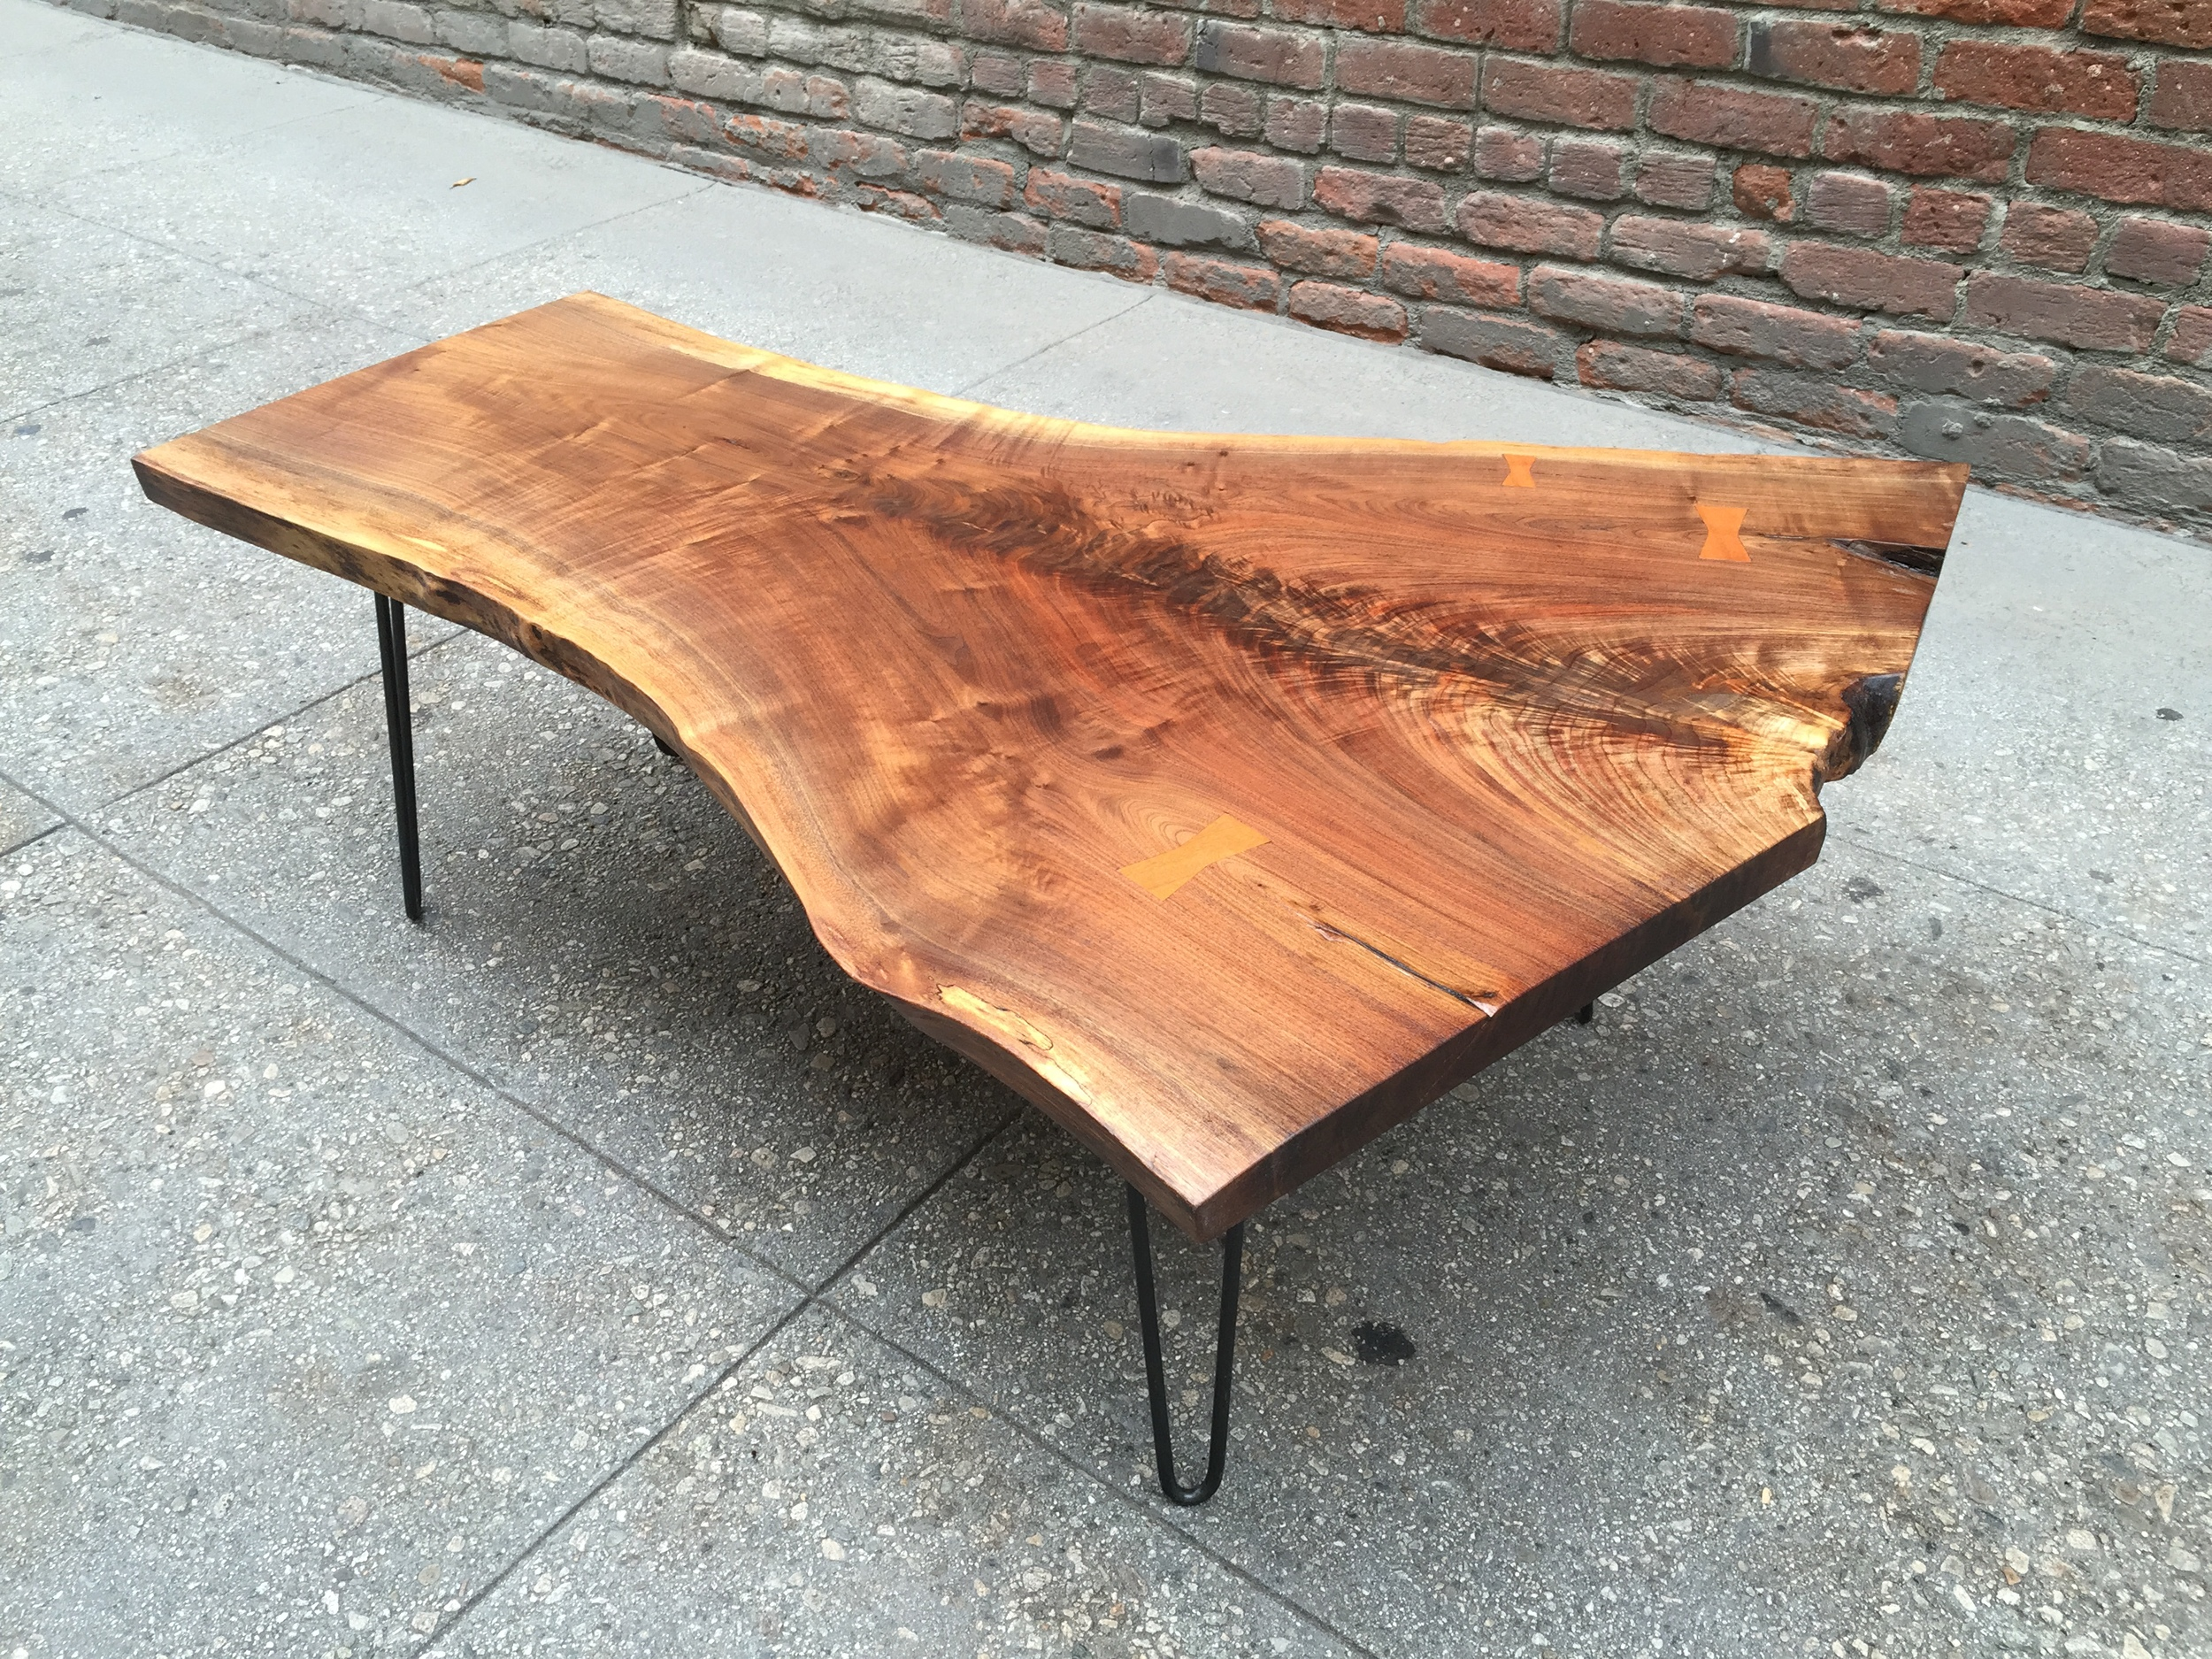 SOLD   Stunning Black Walnut, Live Edge Coffee Table   P10269 U2014  Pasadenaville Live Edge Wood Slab Tables And Furniture Los Angeles  California